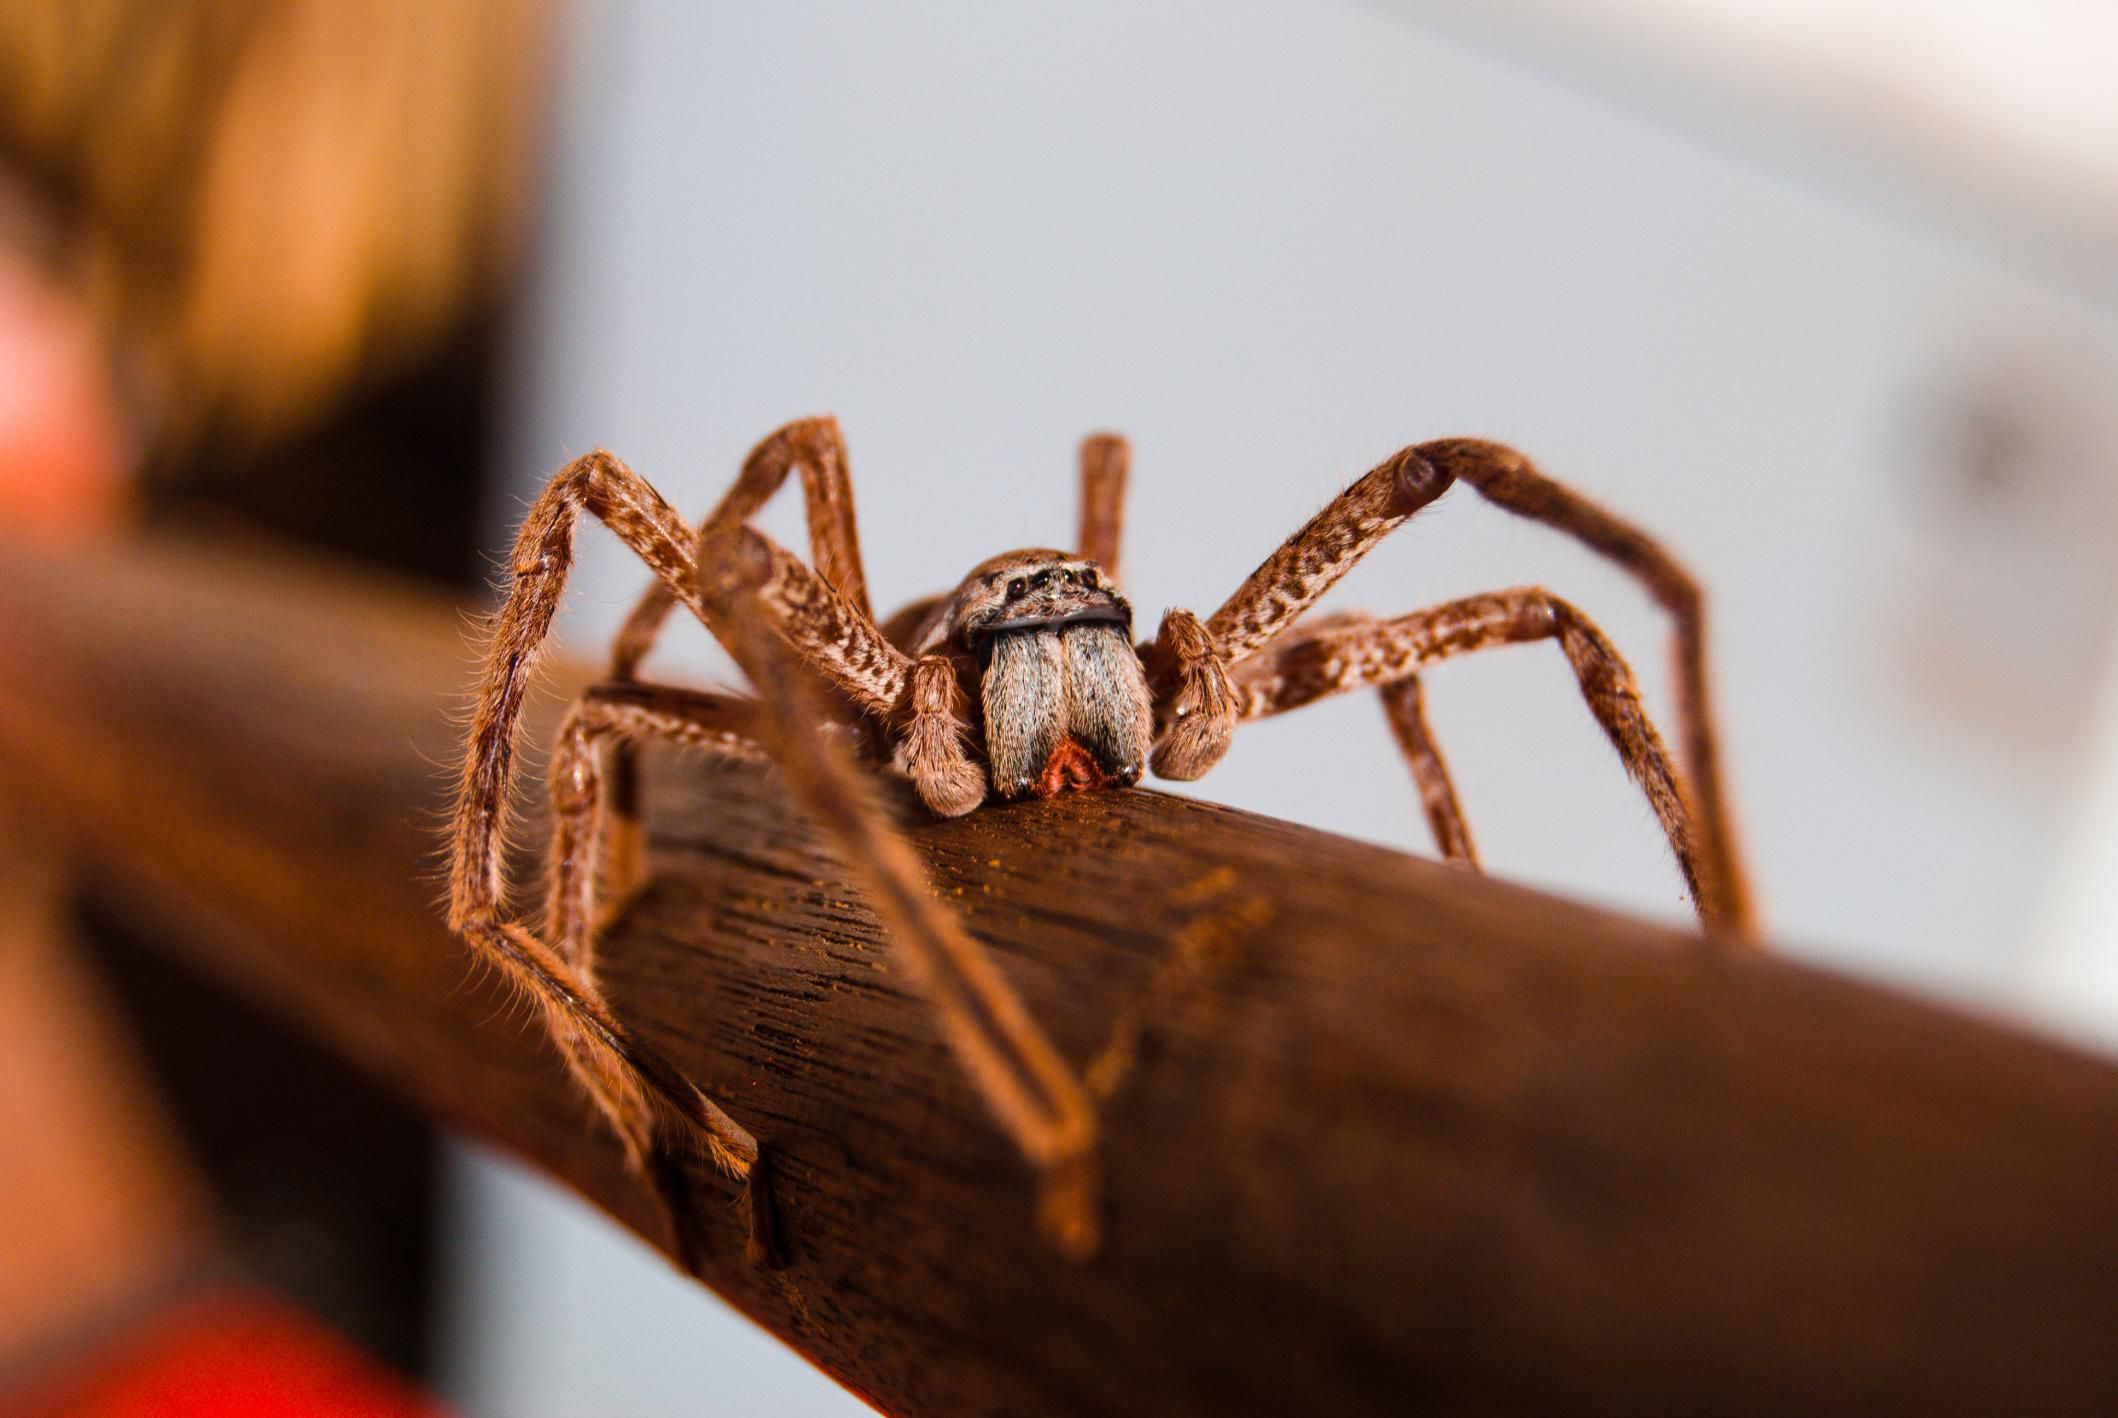 The Huntsman Quot Banana Quot Spider Is Scary But Not Deadly